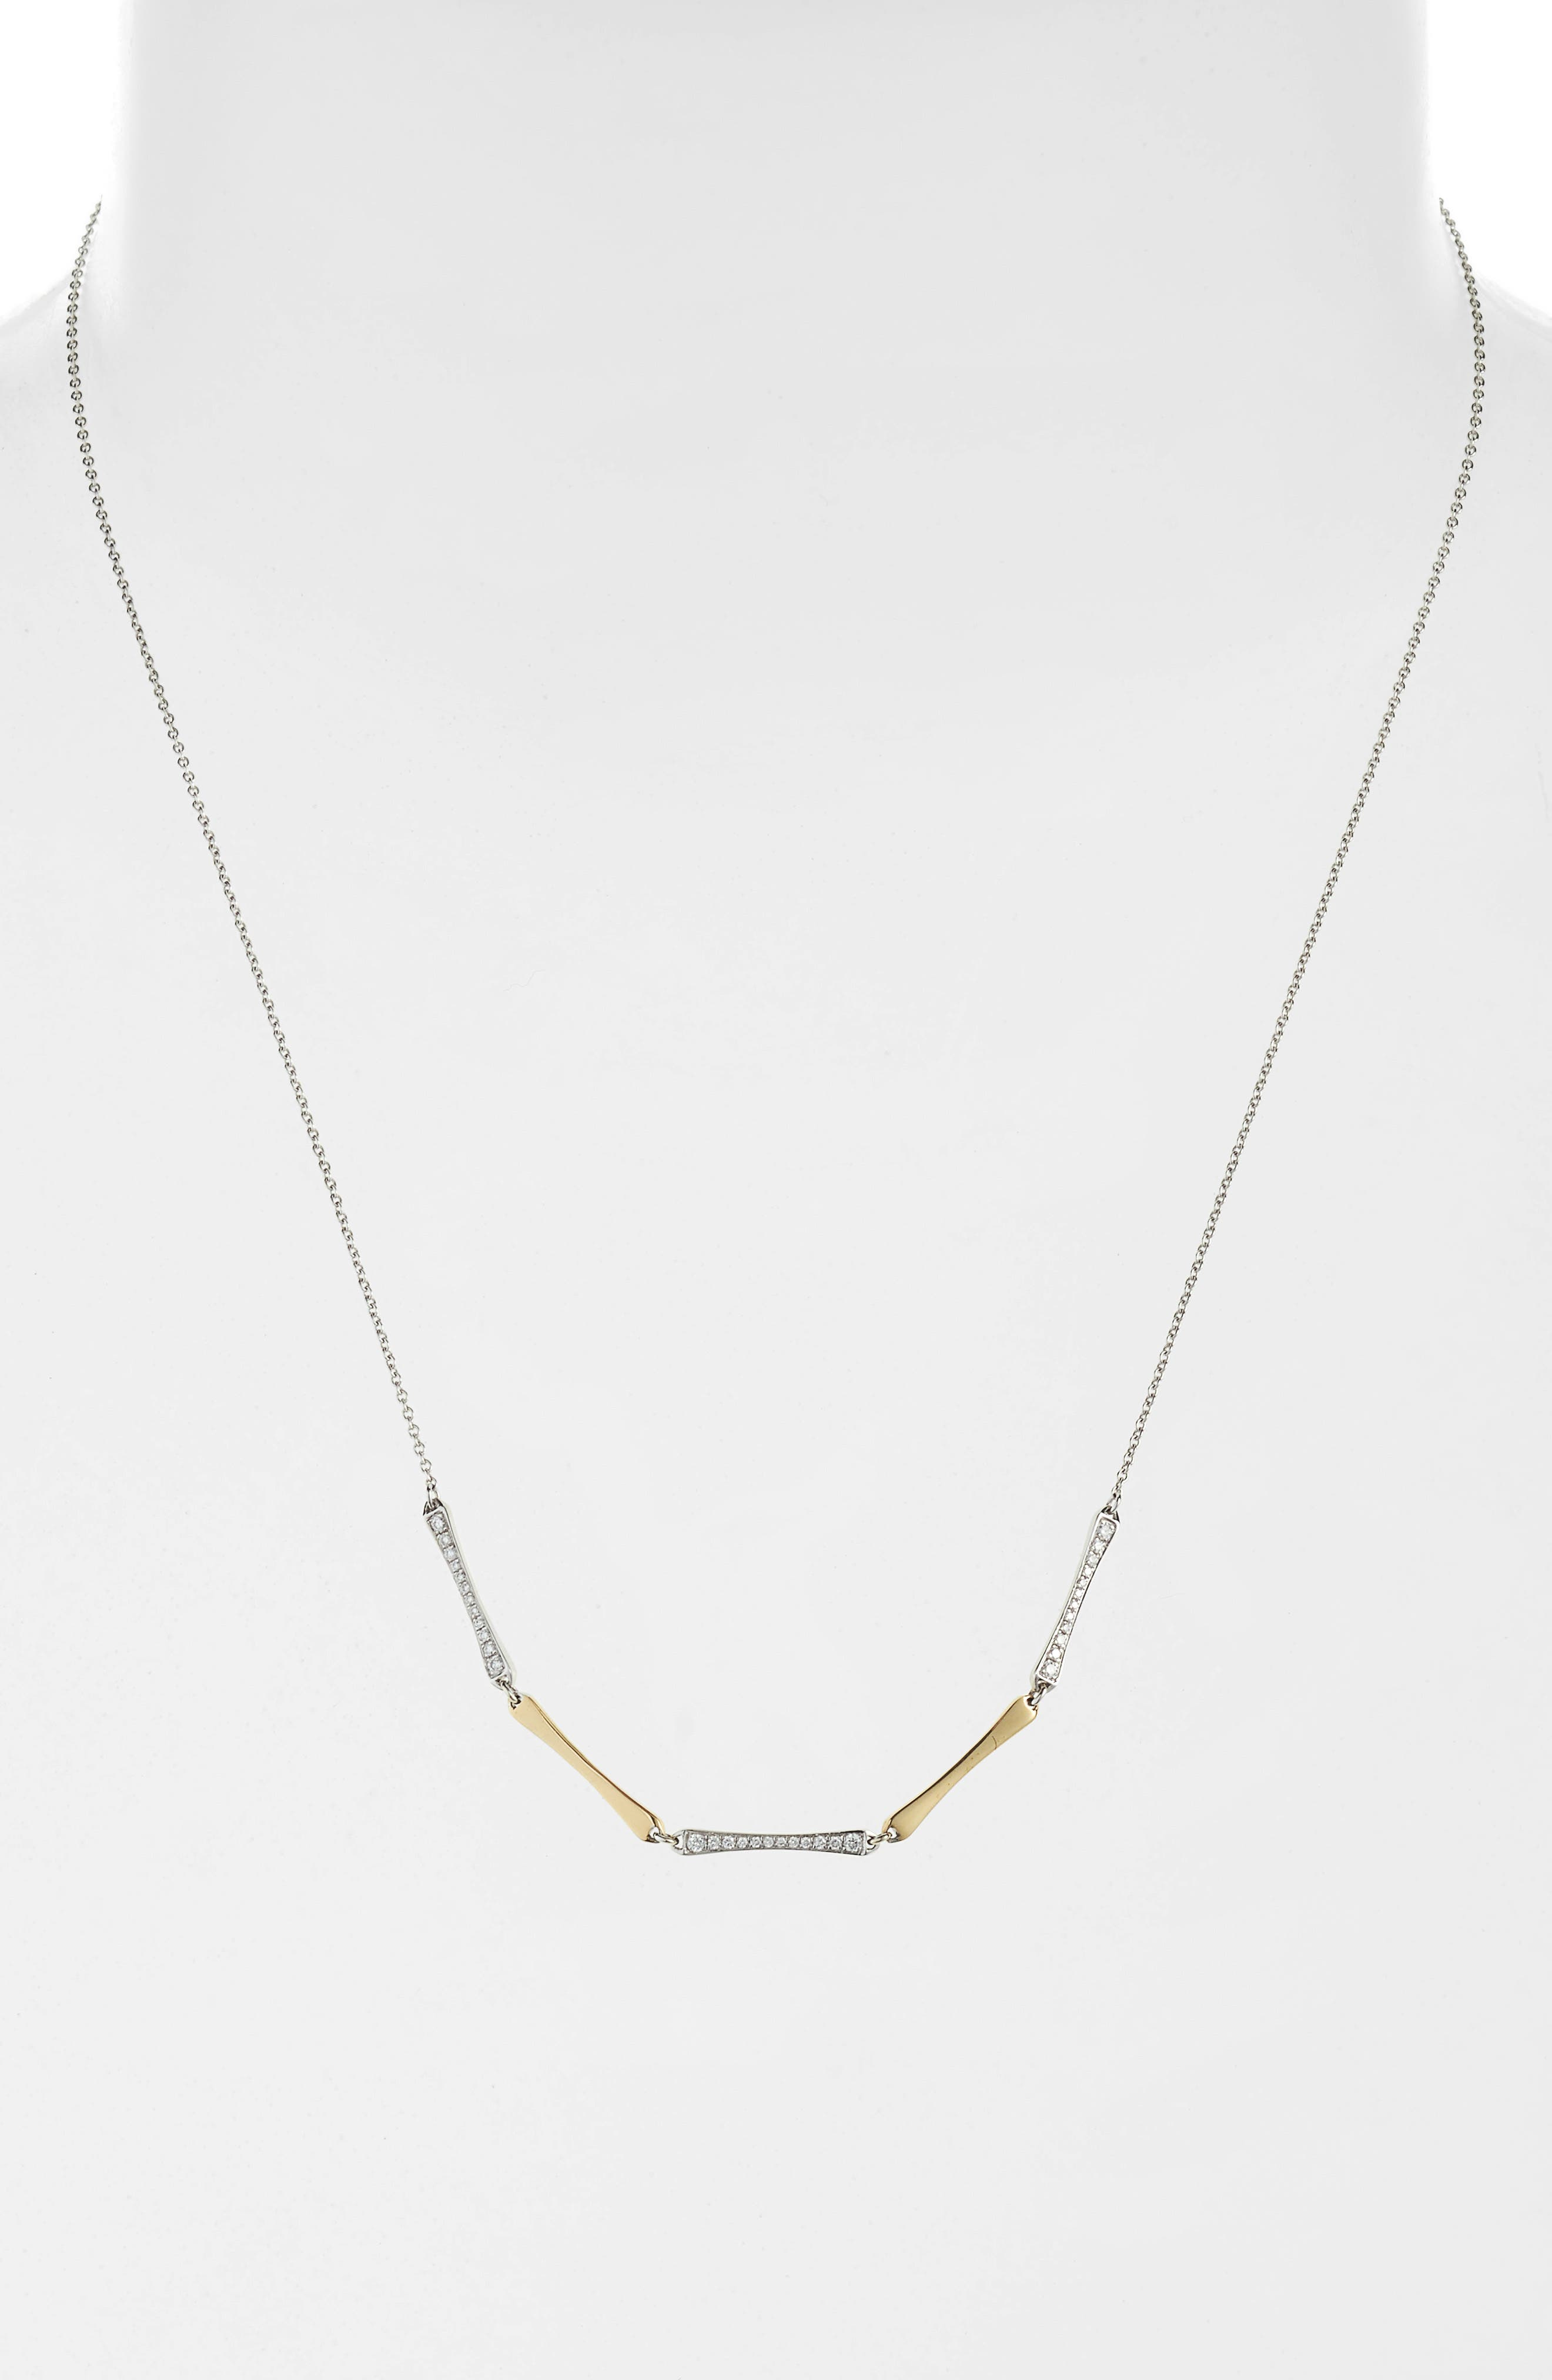 5-Station Bar Necklace with Diamonds,                         Main,                         color, Yellow Gold/ White Gold